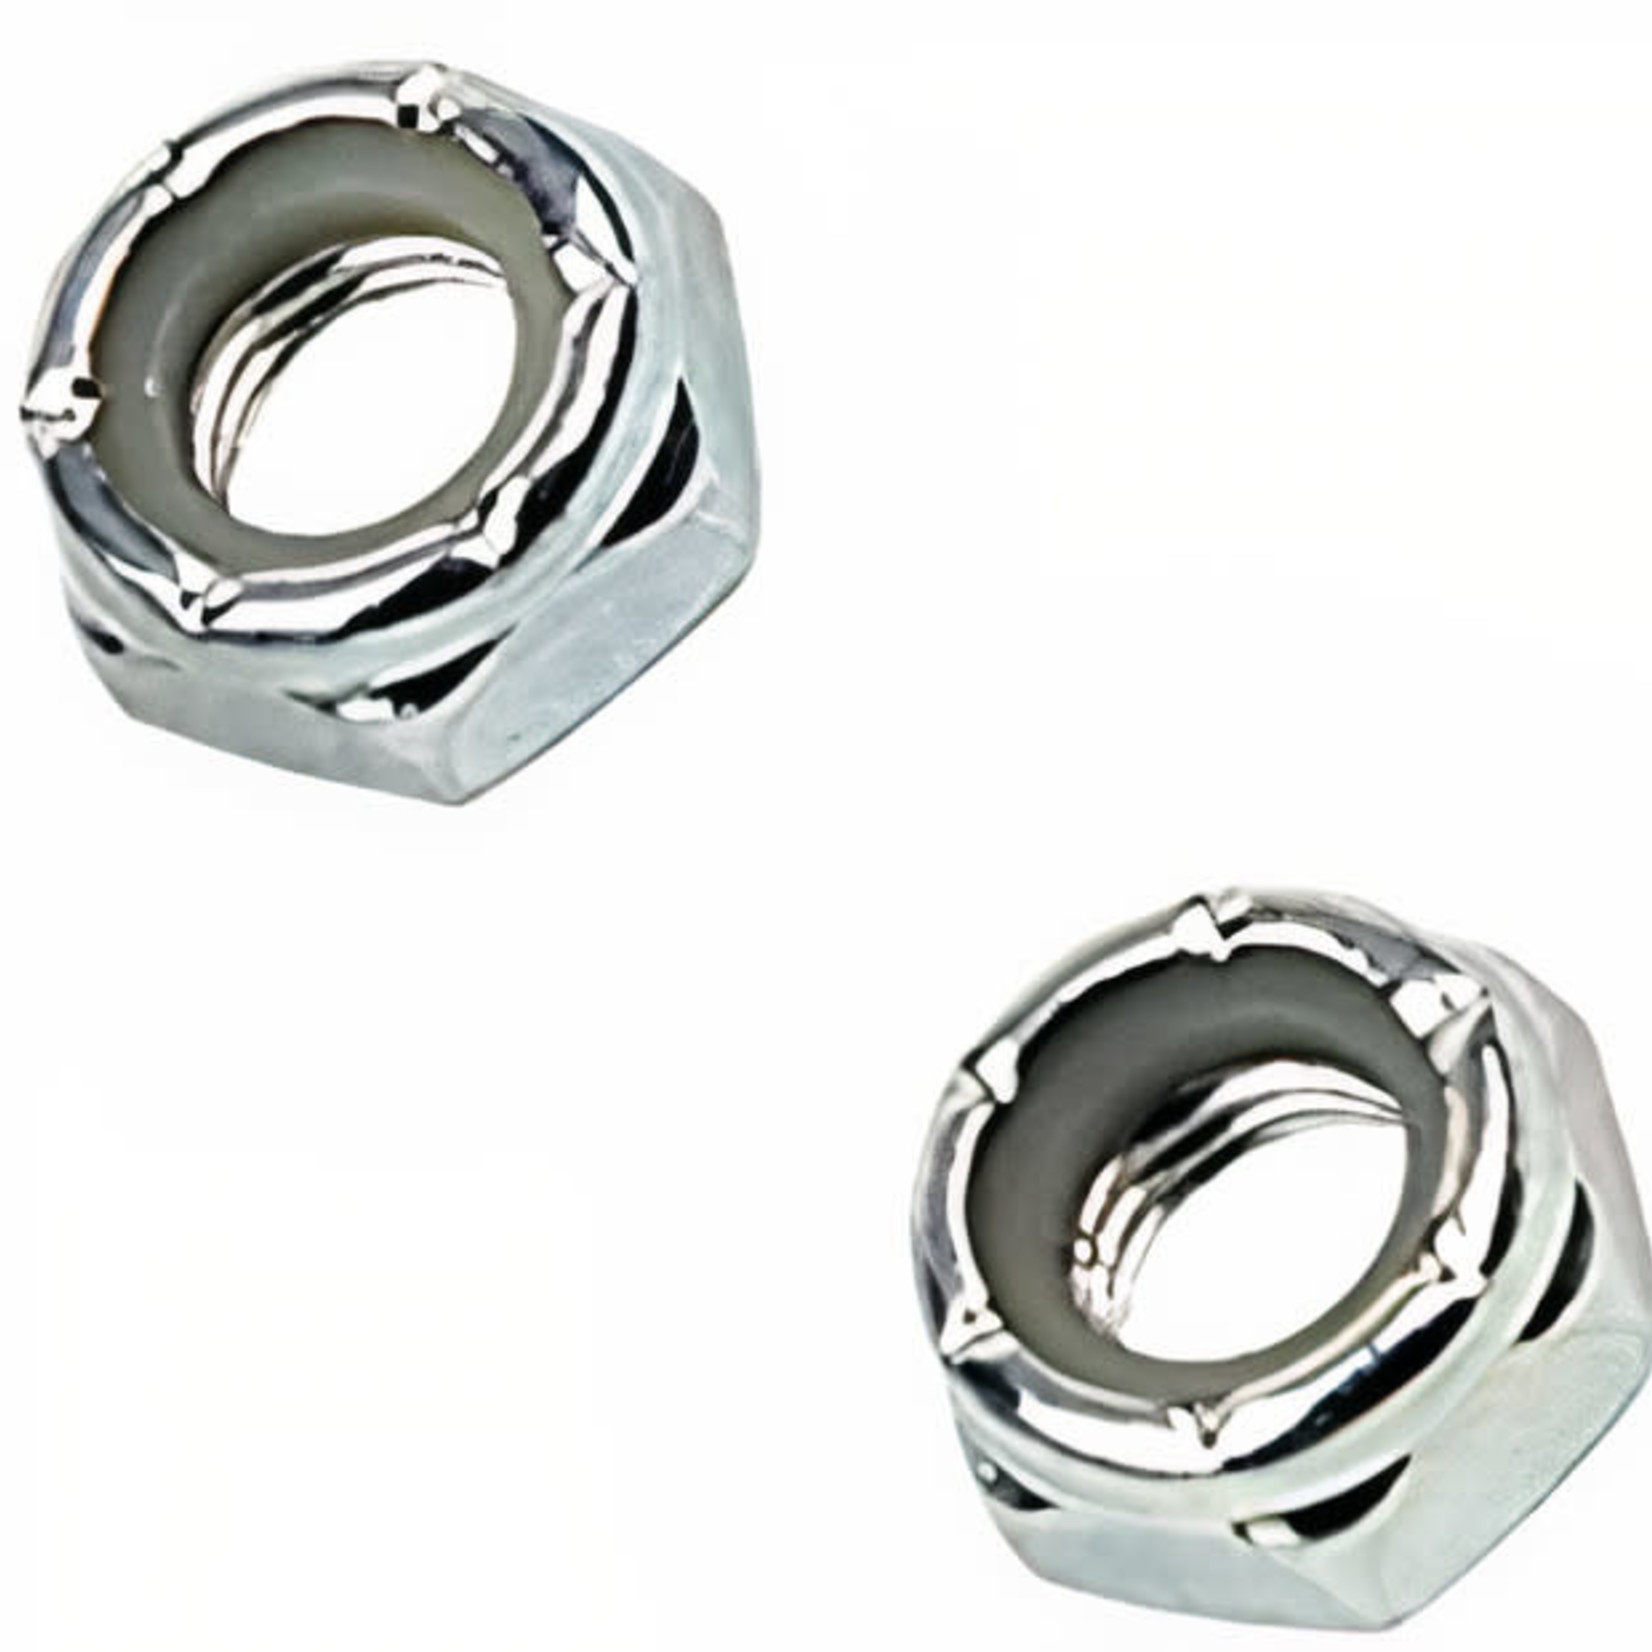 Independent Independent - Genuine Parts Kingpin Replacement Nuts - 2/pk